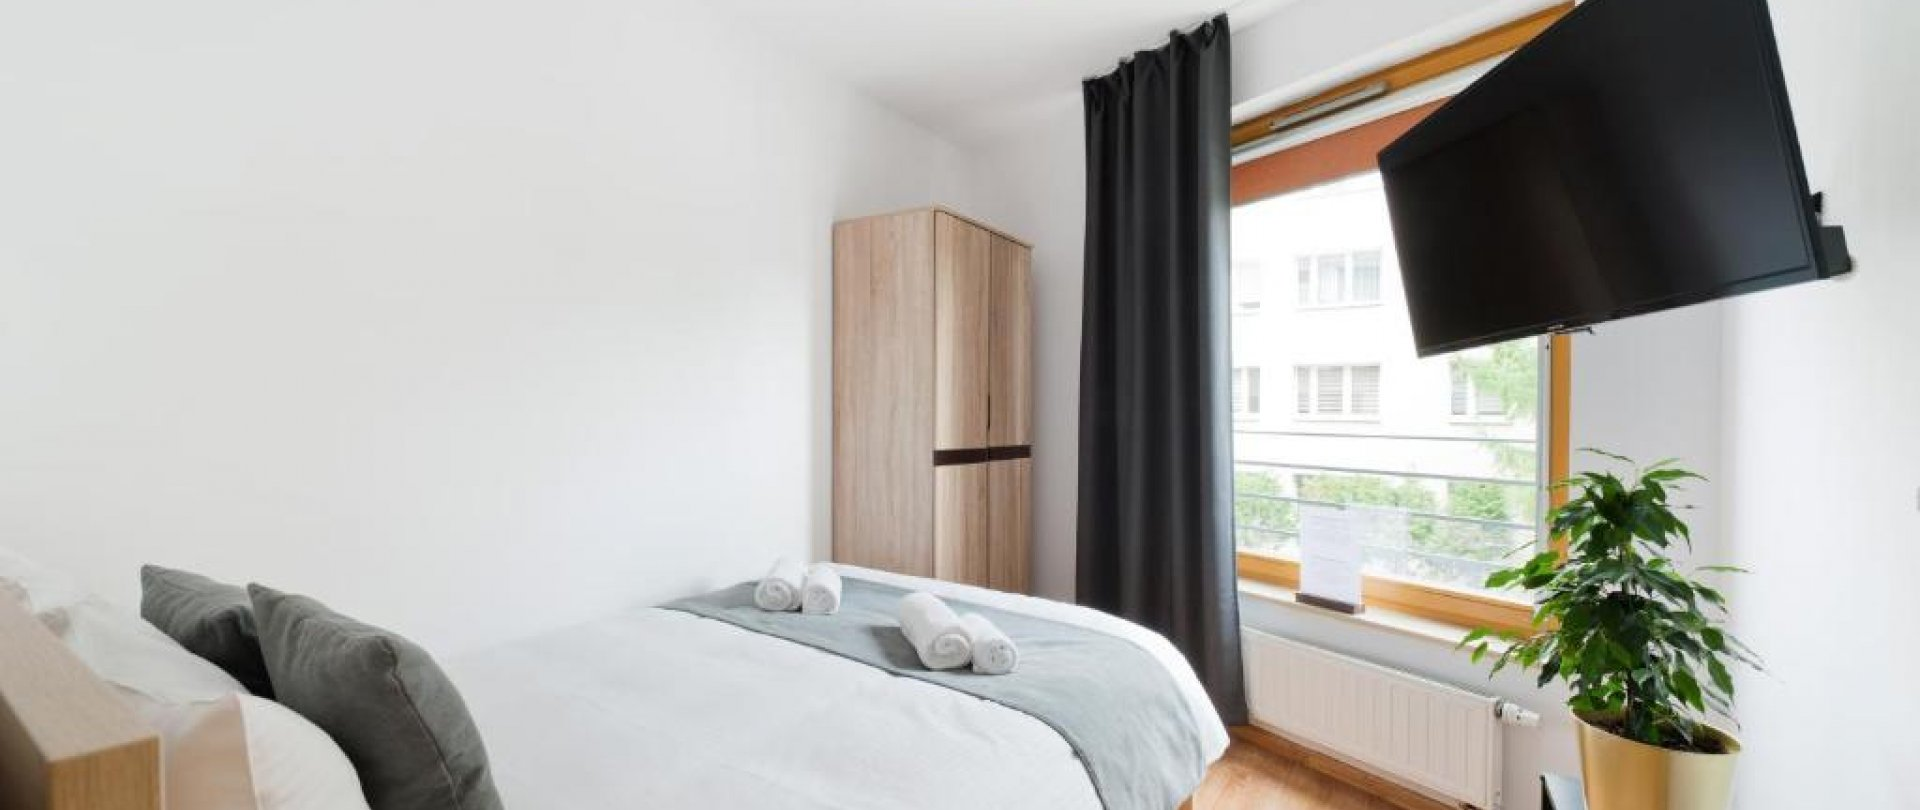 Apartment with one bedroom (110)